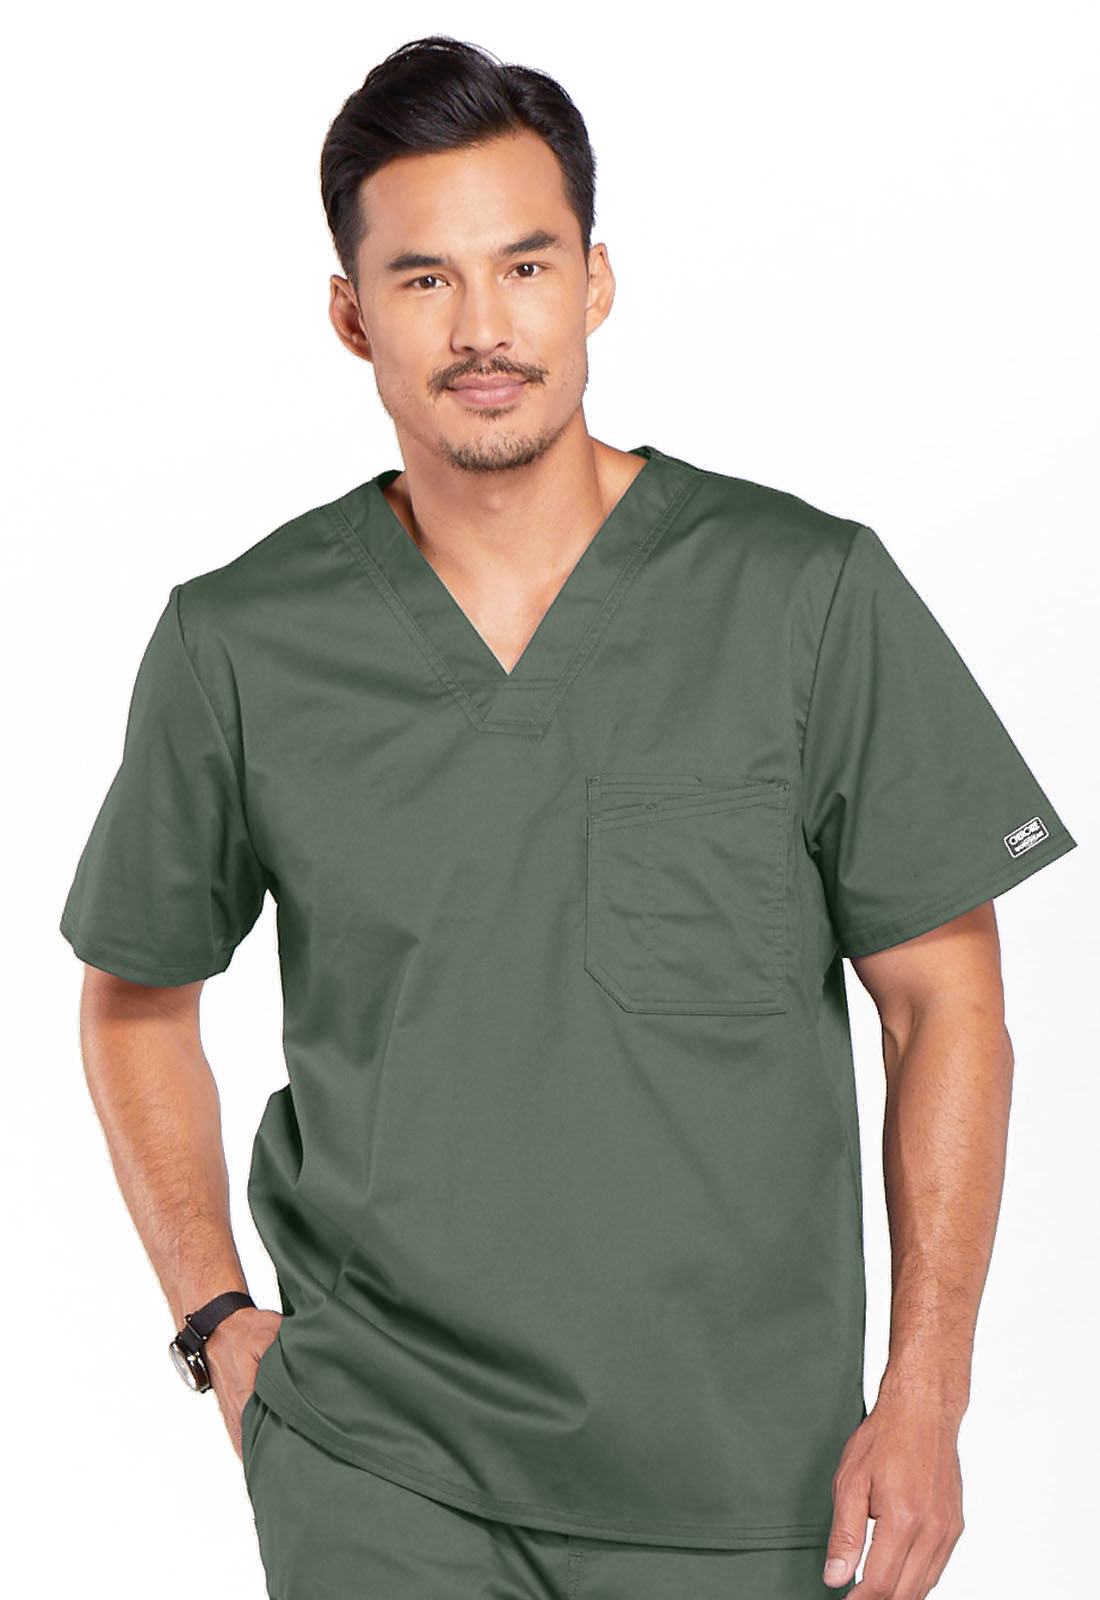 ed988abfe0b WW Core Stretch Men's V-Neck Top in Olive 4743-OLVW from Scrubs Express